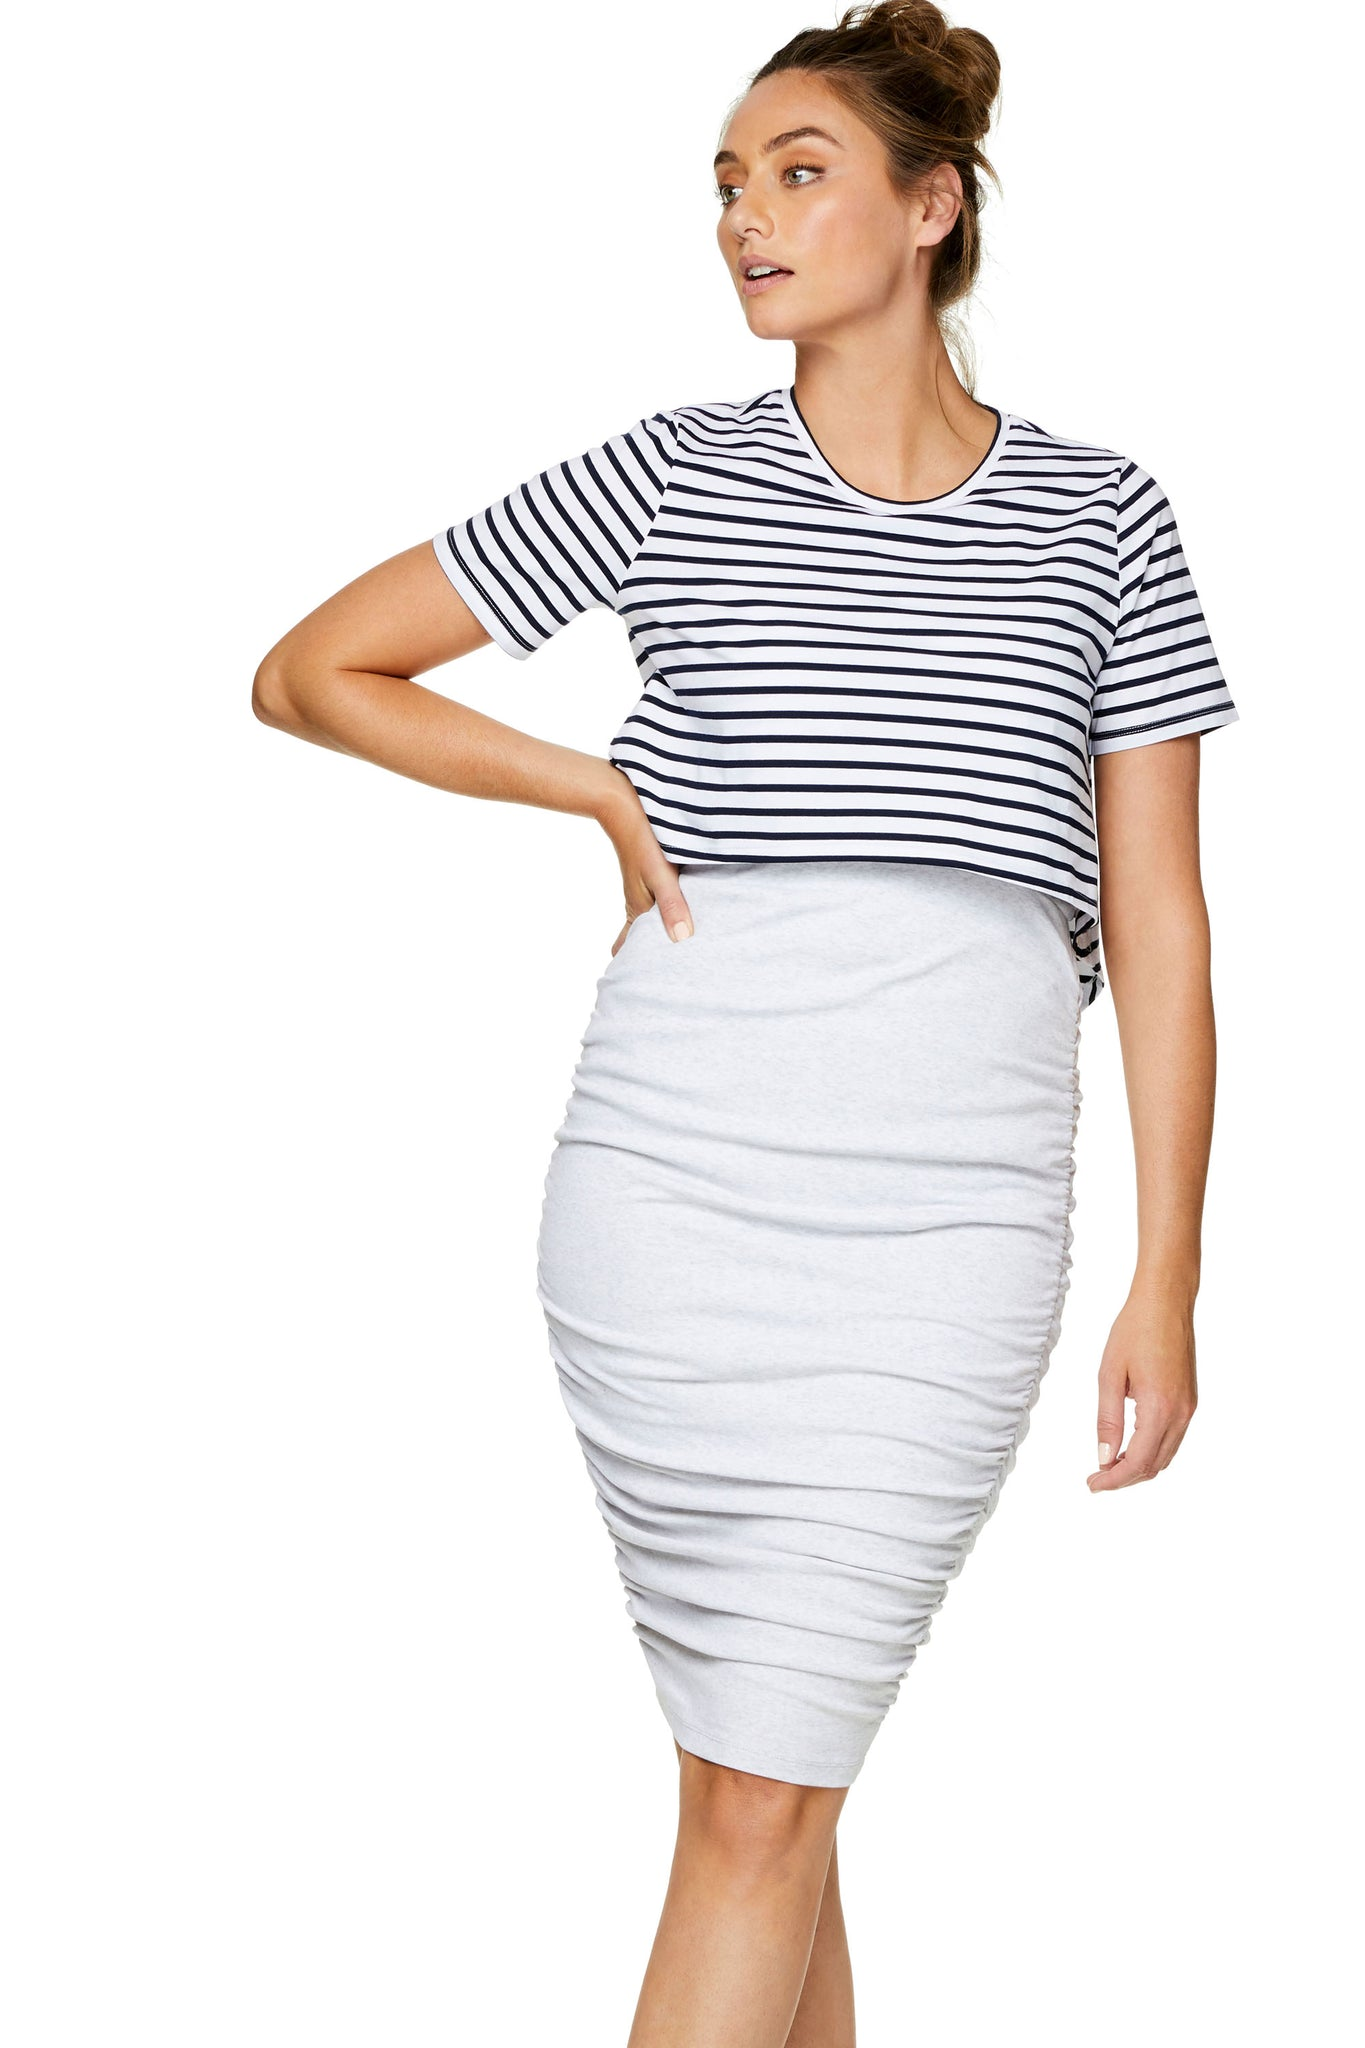 Maternity Workwear Pants Dresses Shirts And More Bae The Label Australia